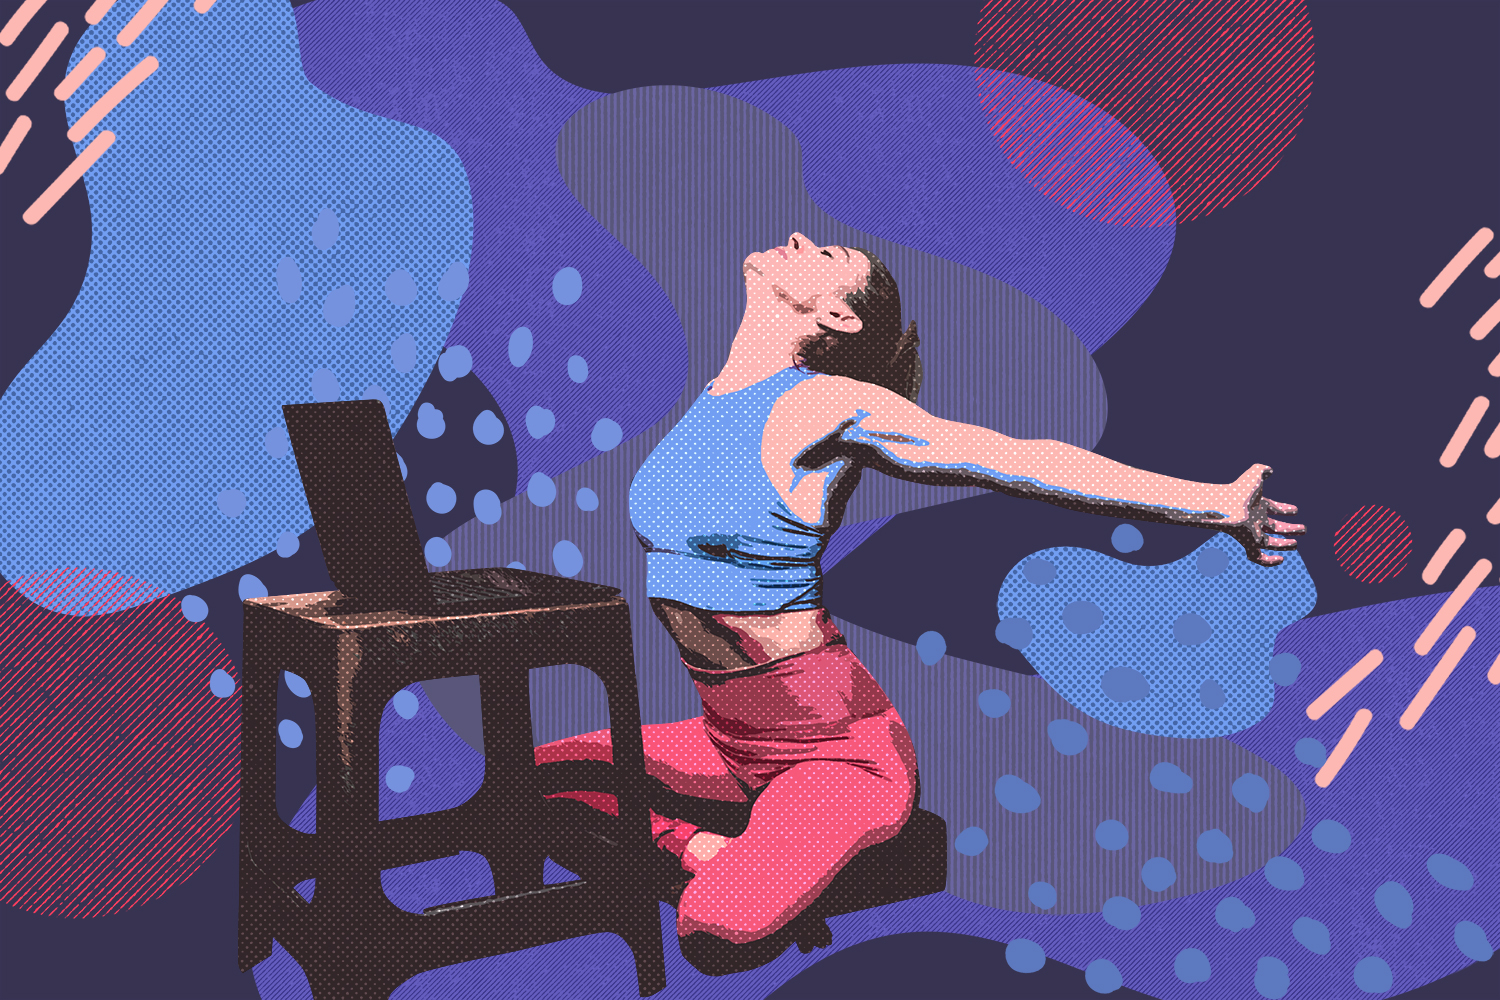 Woman in yoga outfit stretches in opposing posture and stretching out her arms and head behind her as a laptop sits in front of her view